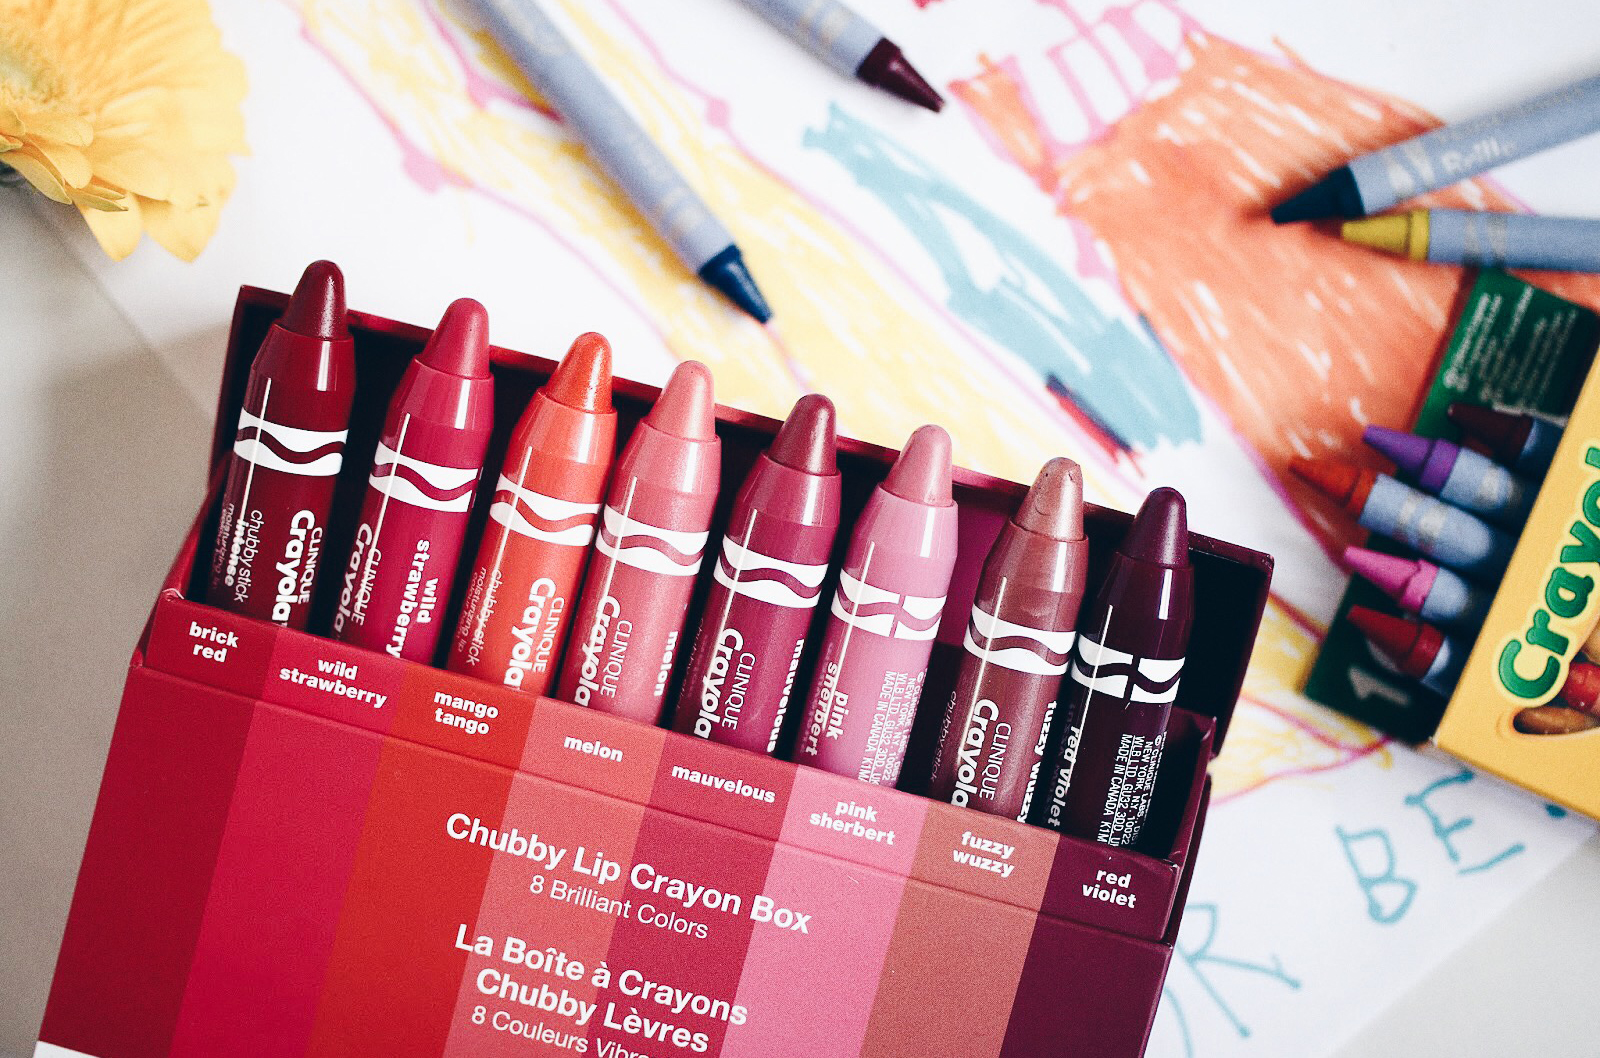 clinique crayola chubby stick avis test swatches